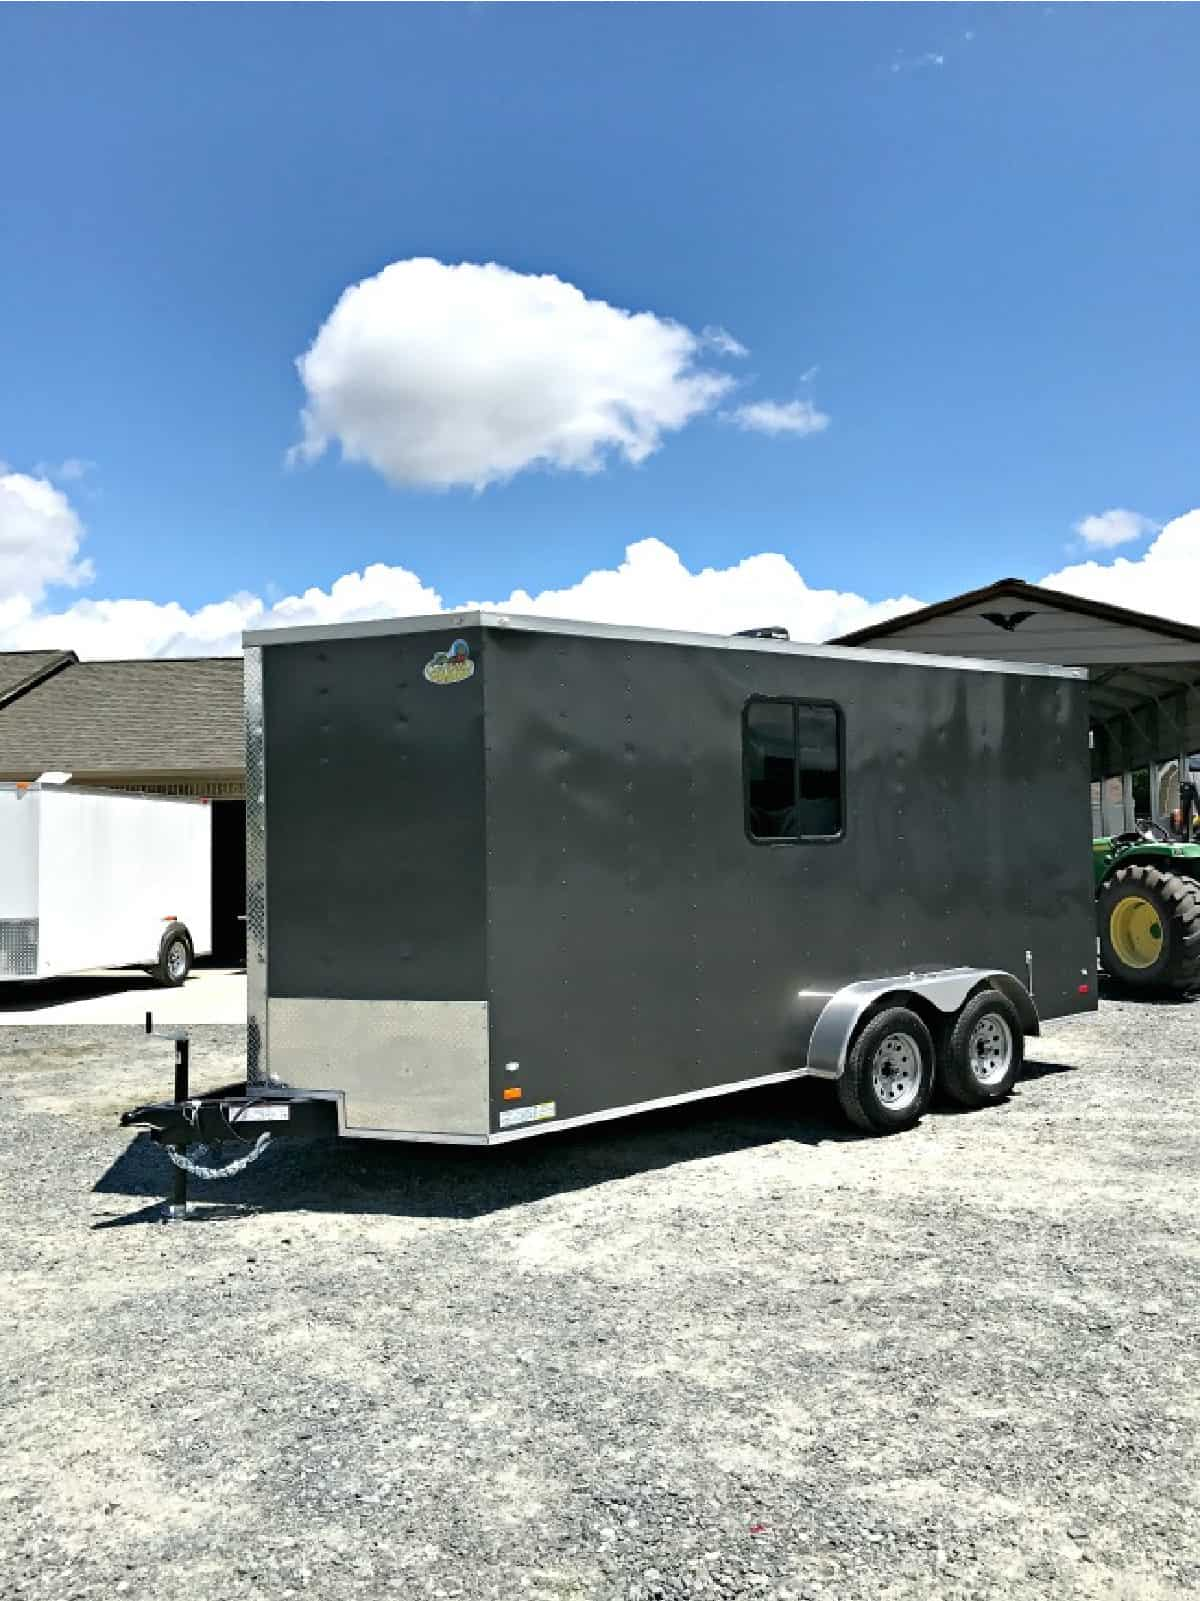 outside view of gray landscape trailer with window